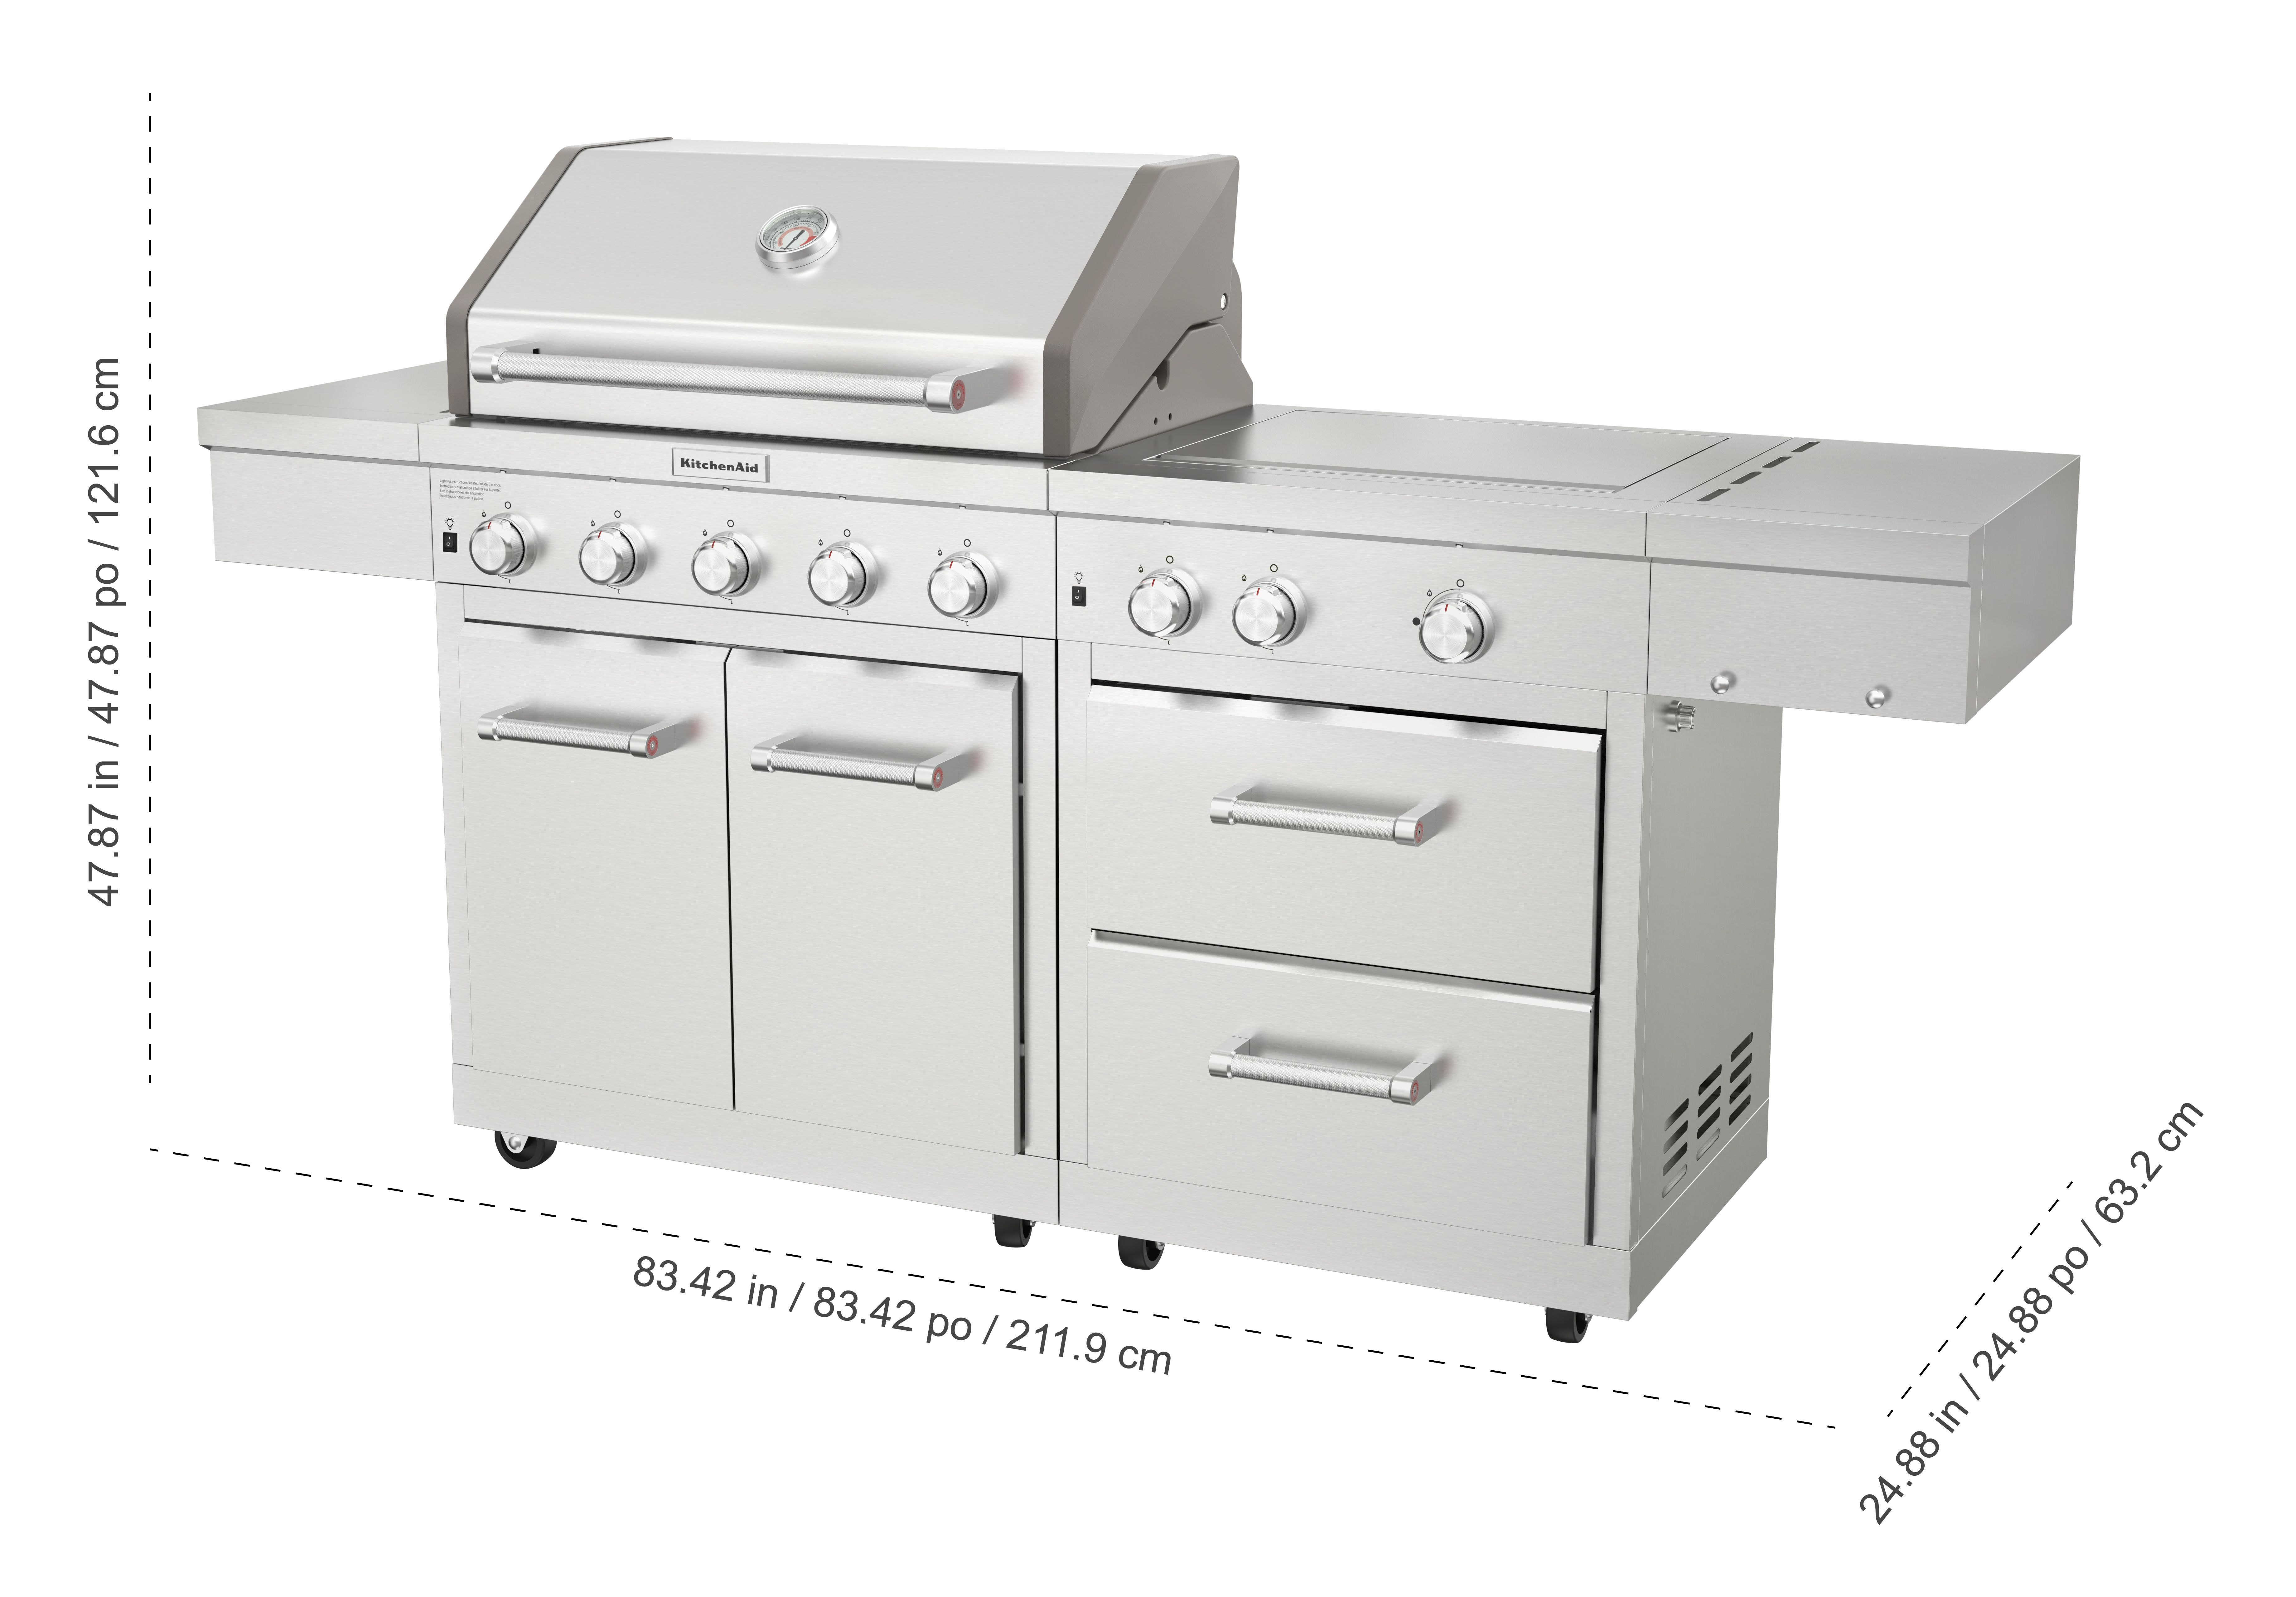 Kitchenaid Stainless Steel 8 Burner Grill With Images Kitchen